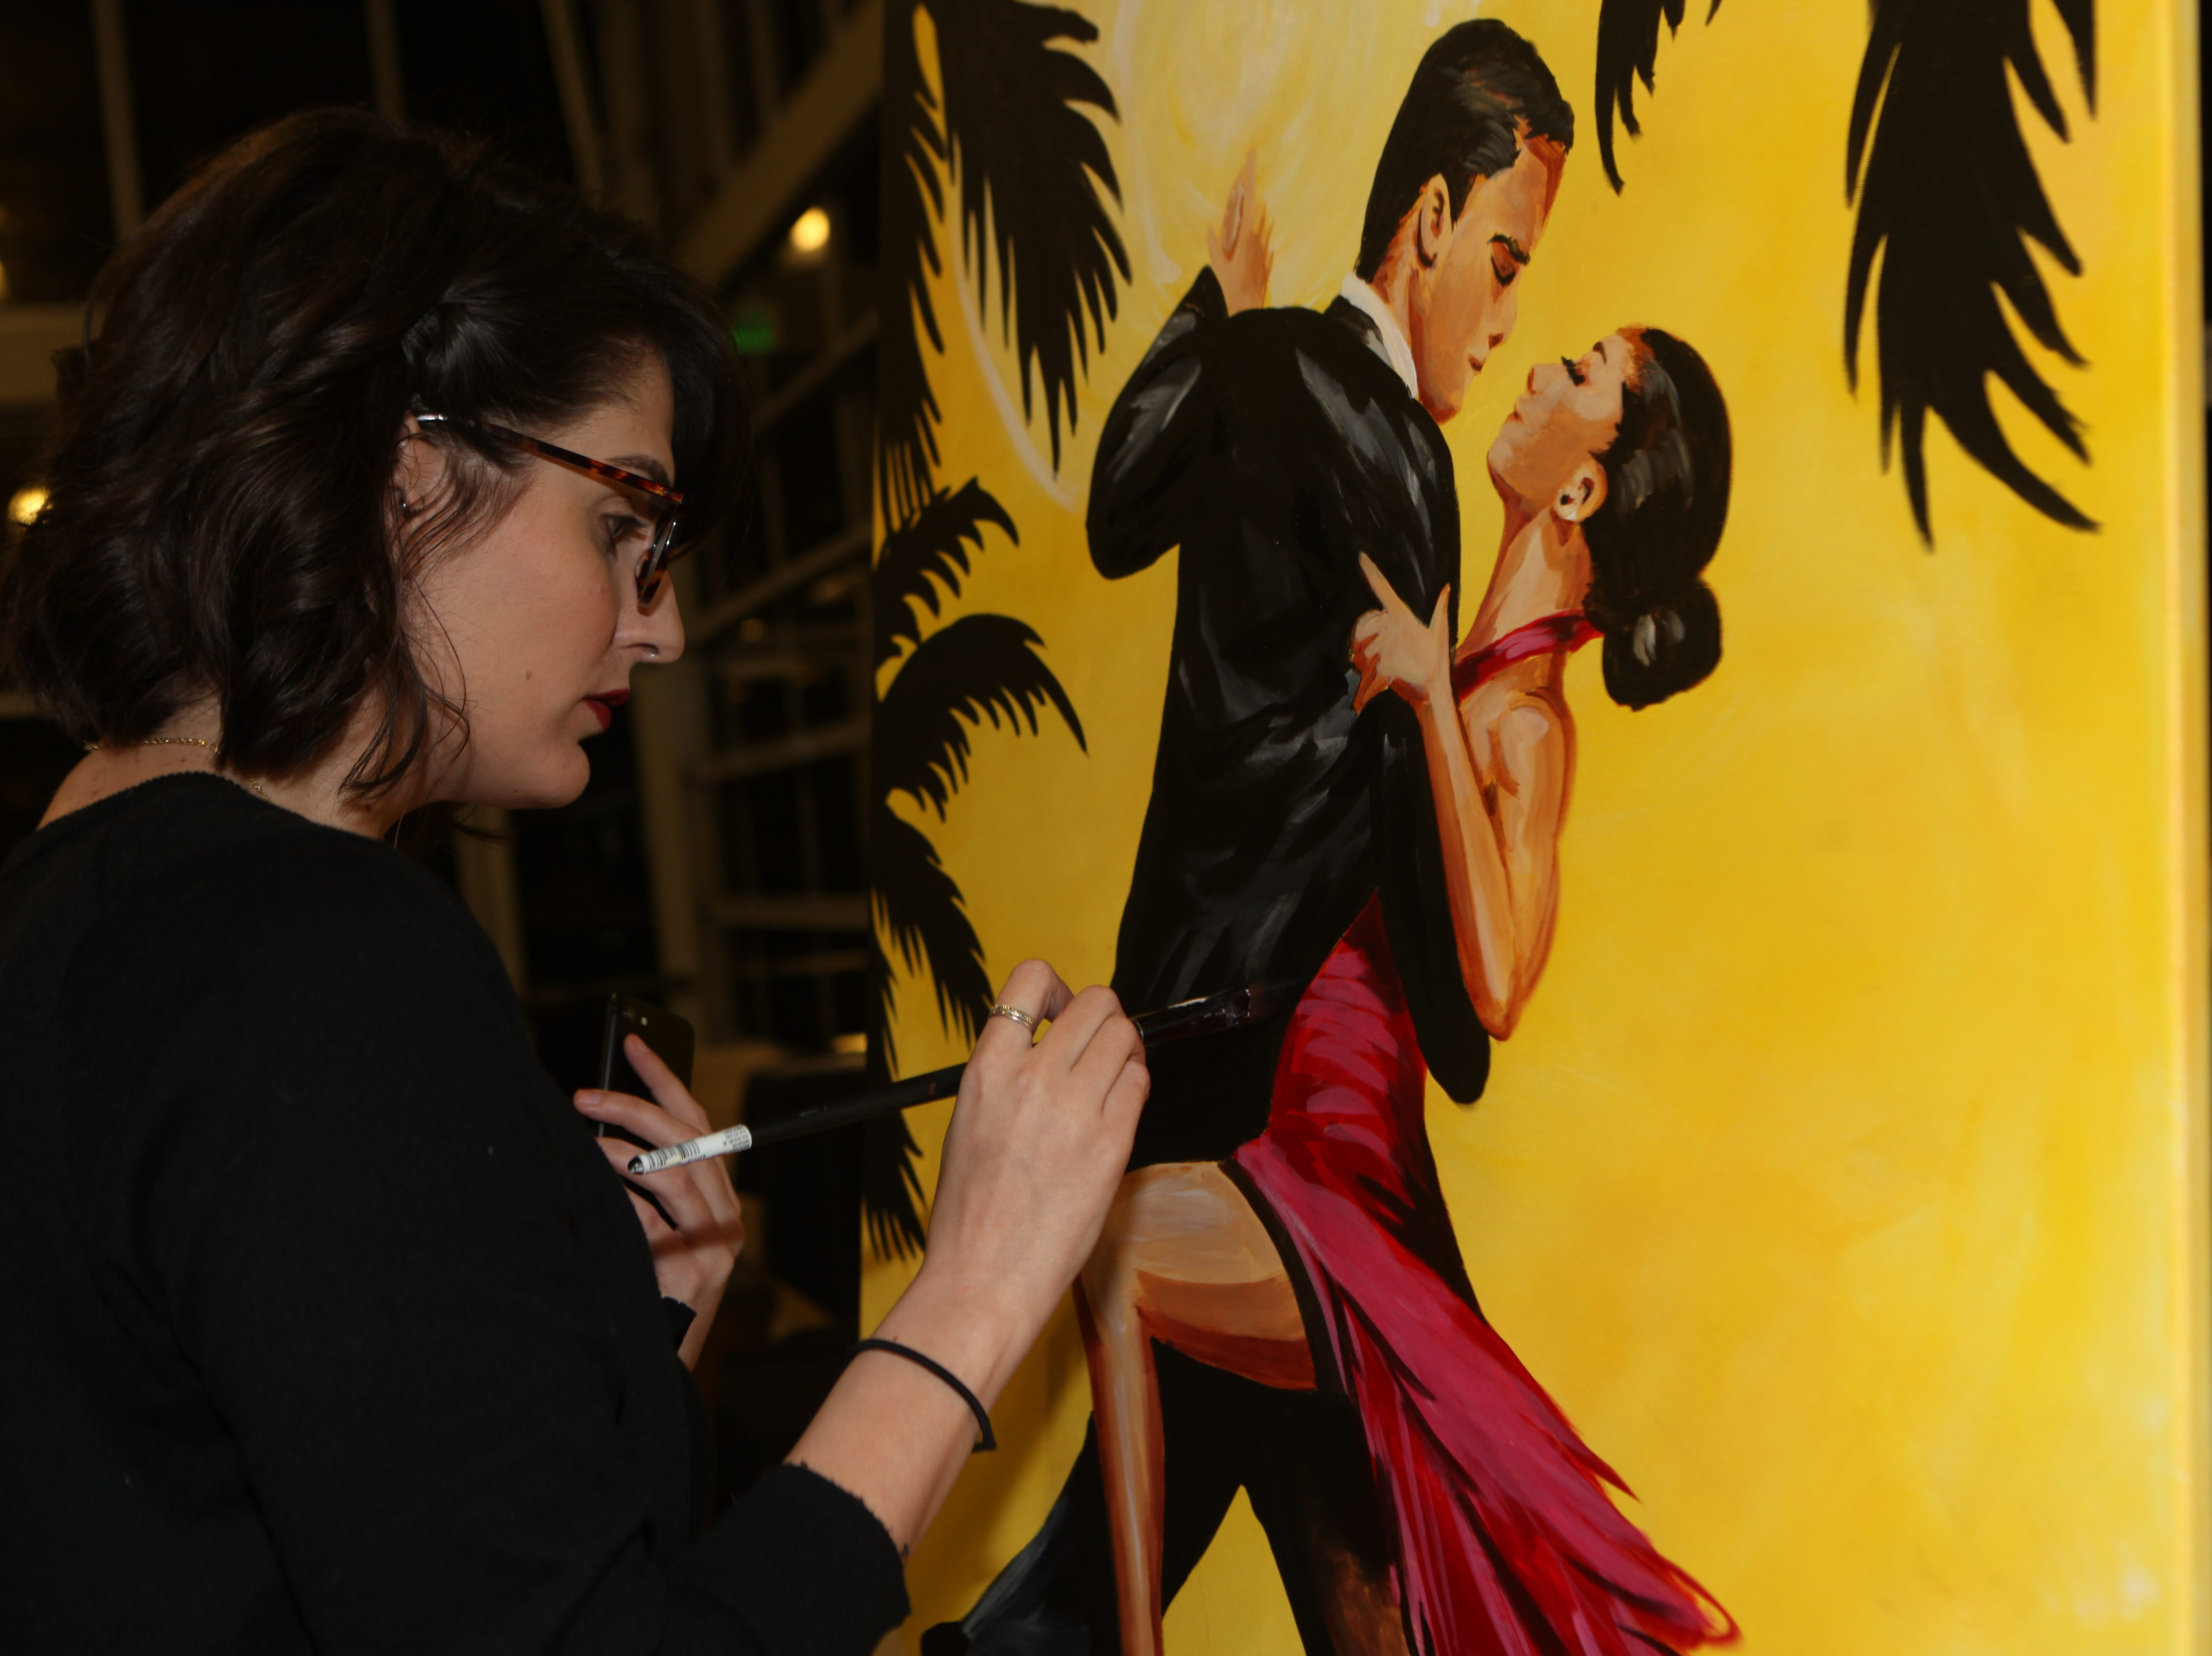 Amy Scheren captures the spirit of Havana nights in a painting done live and auctioned at the Fort Campbell Spouses Club Very Important Charity Event on March 9, 2019.